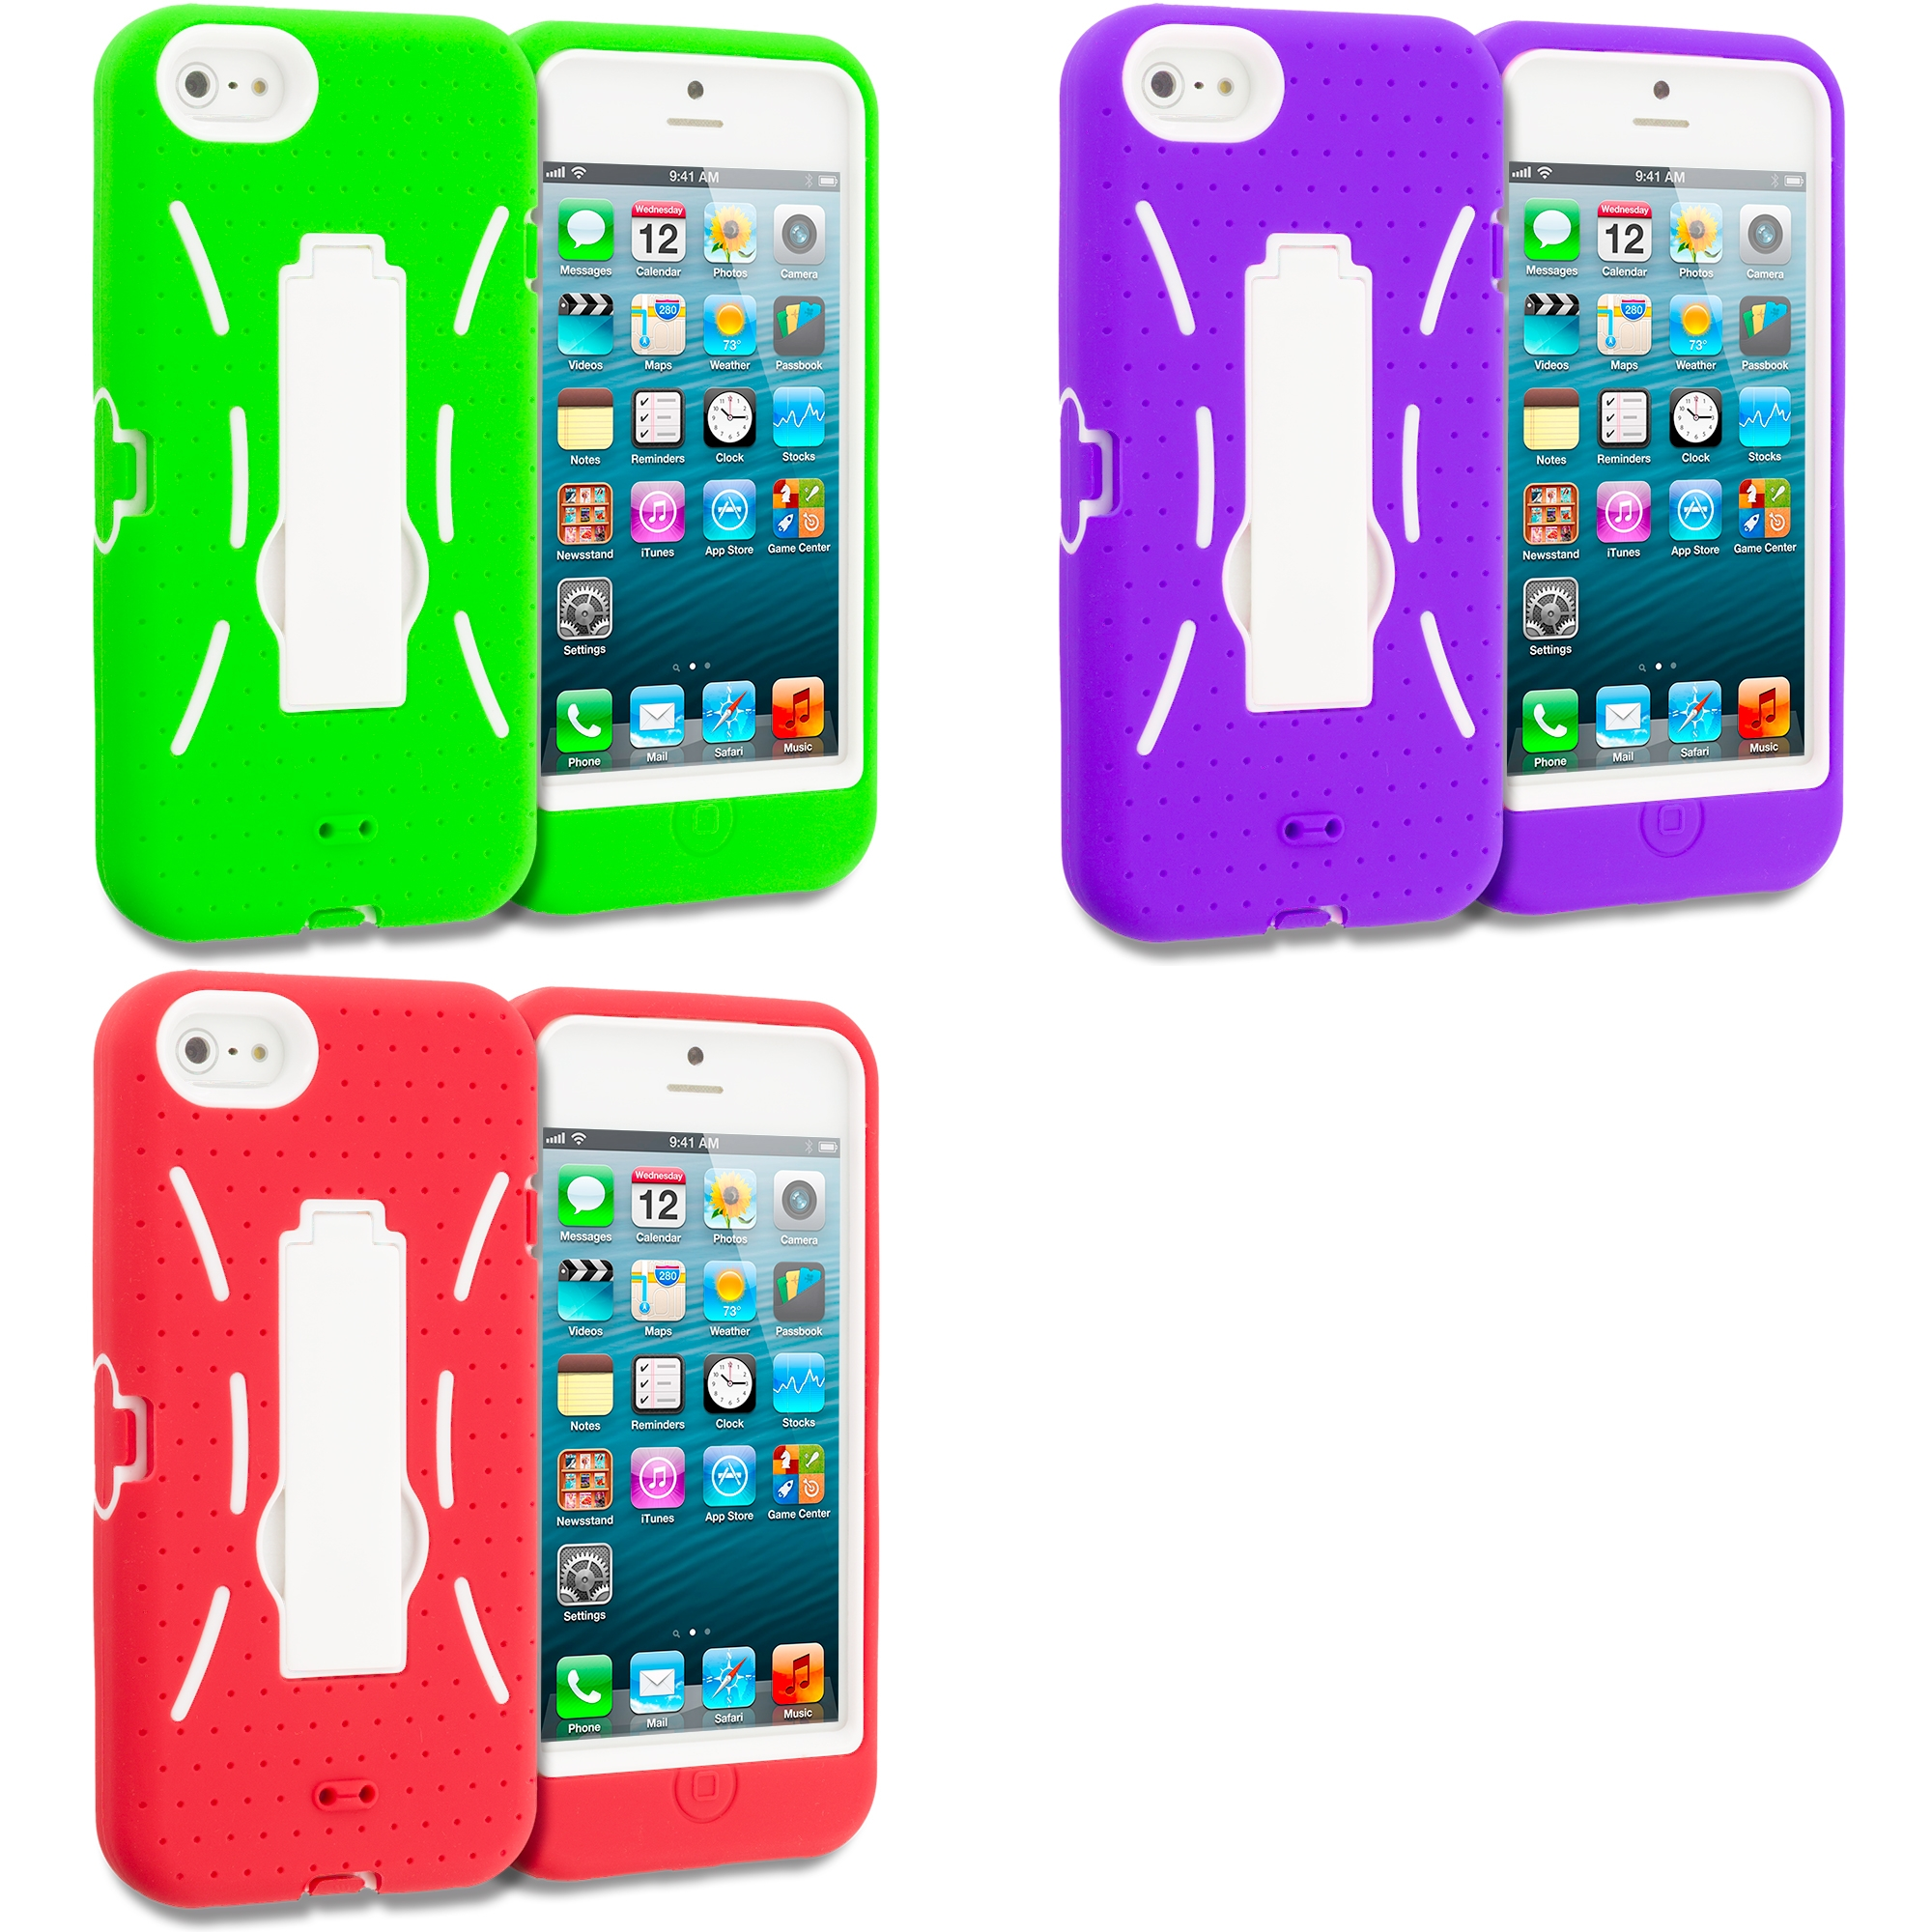 Apple iPhone 5/5S/SE Combo Pack : Neon Green / White Hybrid Heavy Duty Hard/Soft Case Cover with Stand